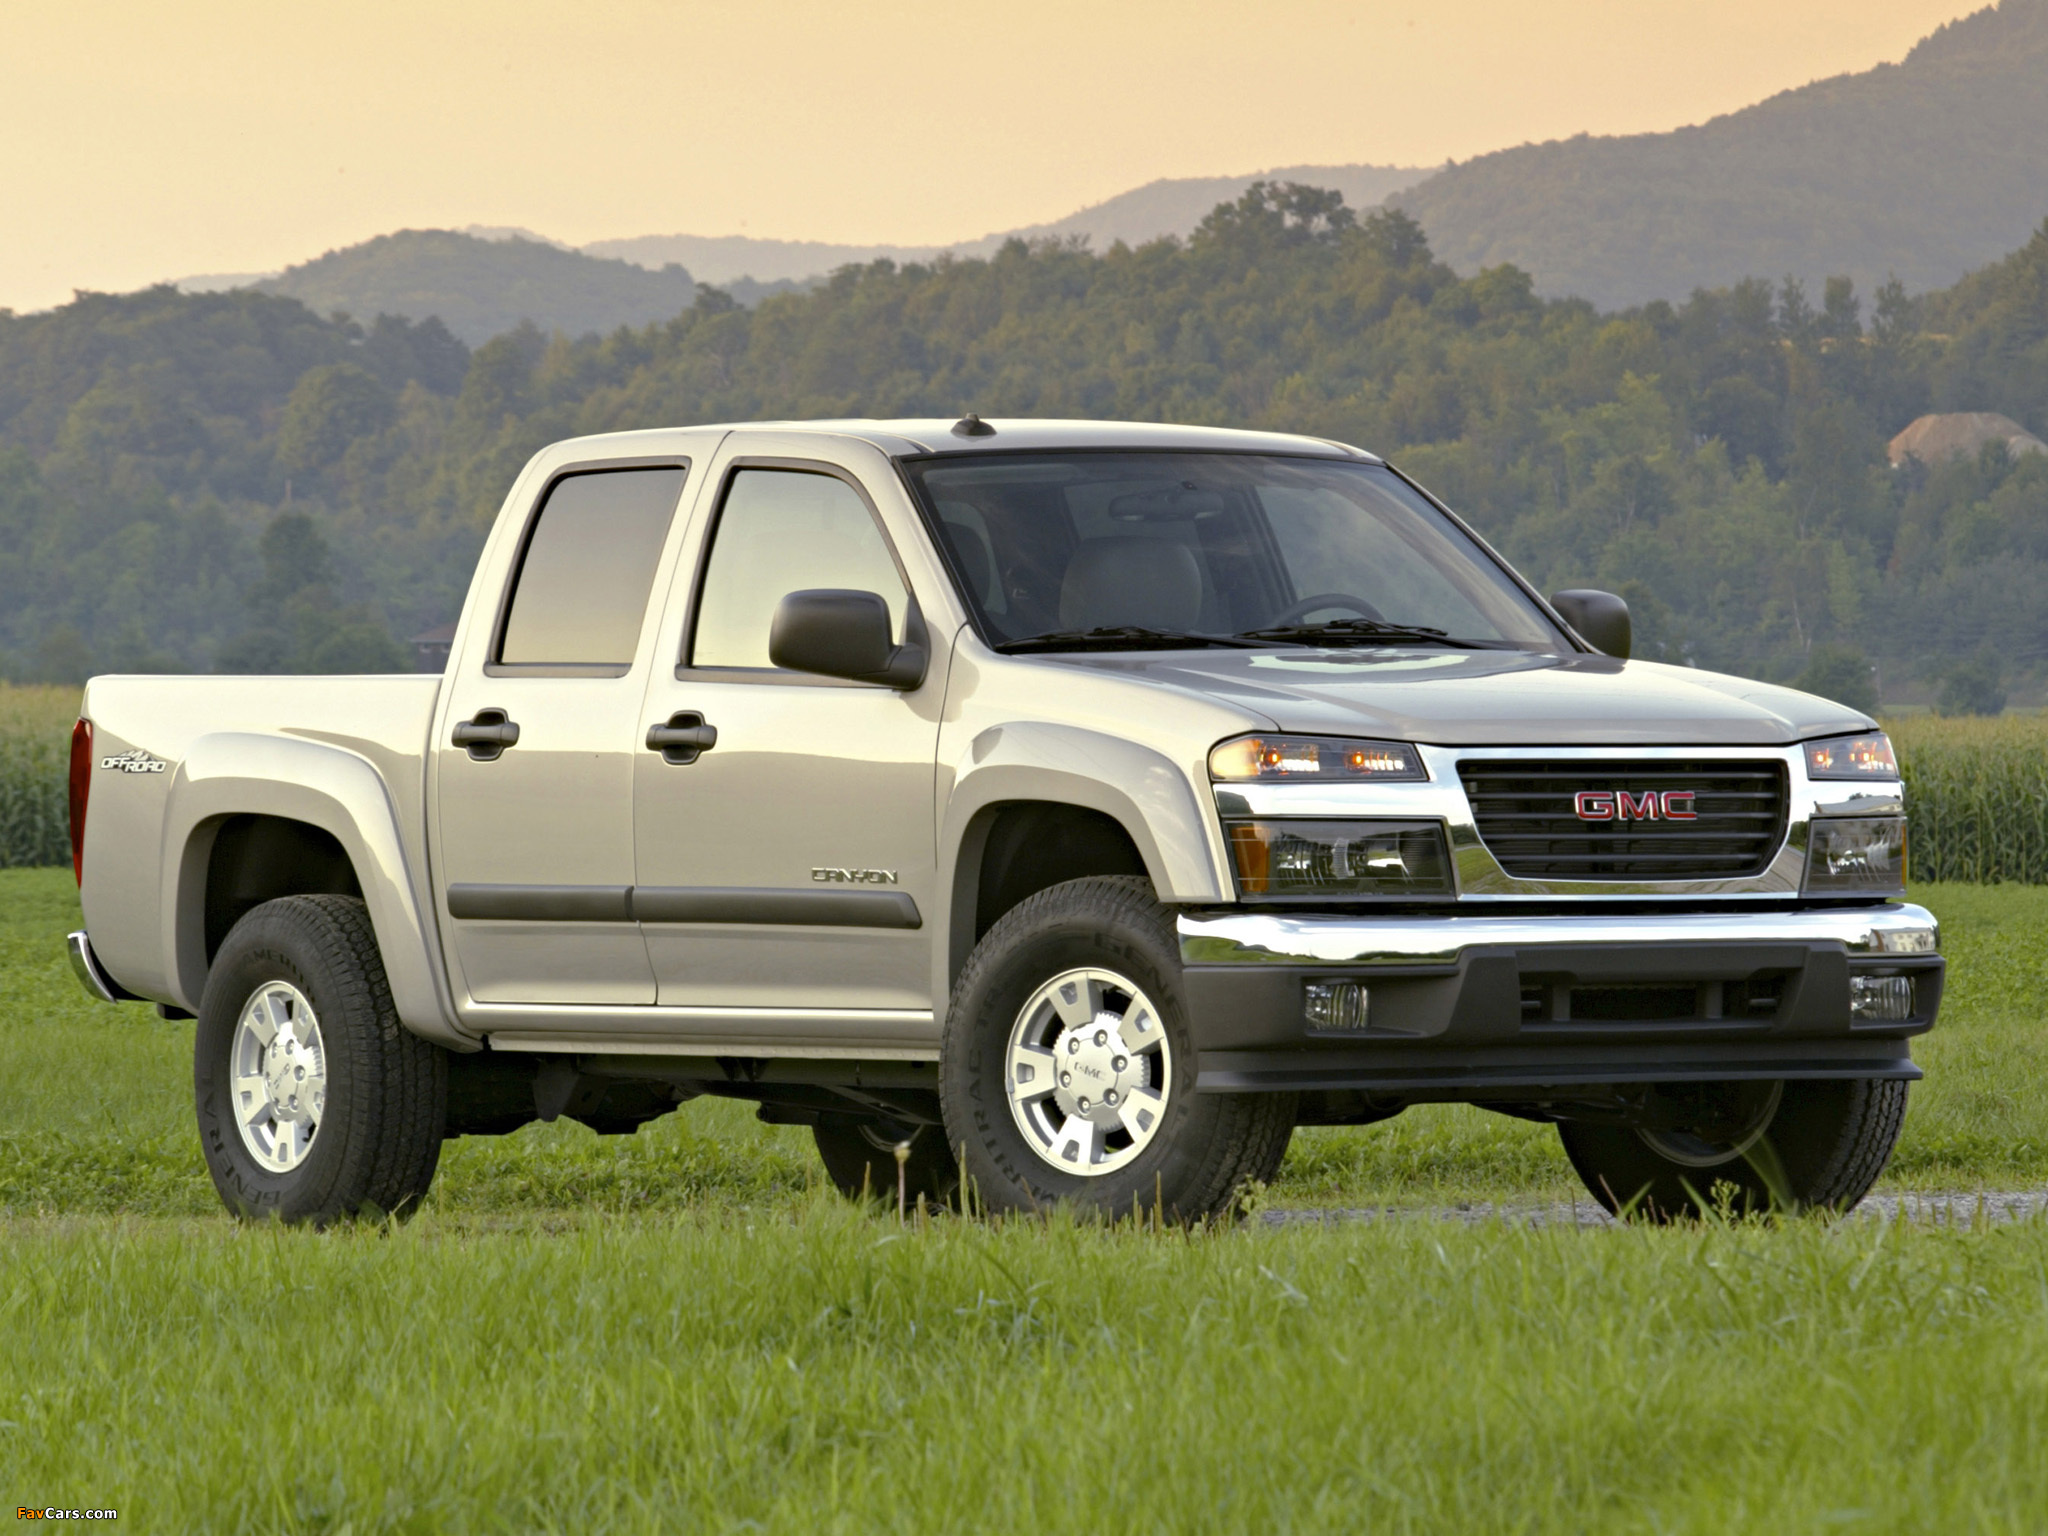 Gmc Canyon Crew Cab 2004 Pictures  2048x1536